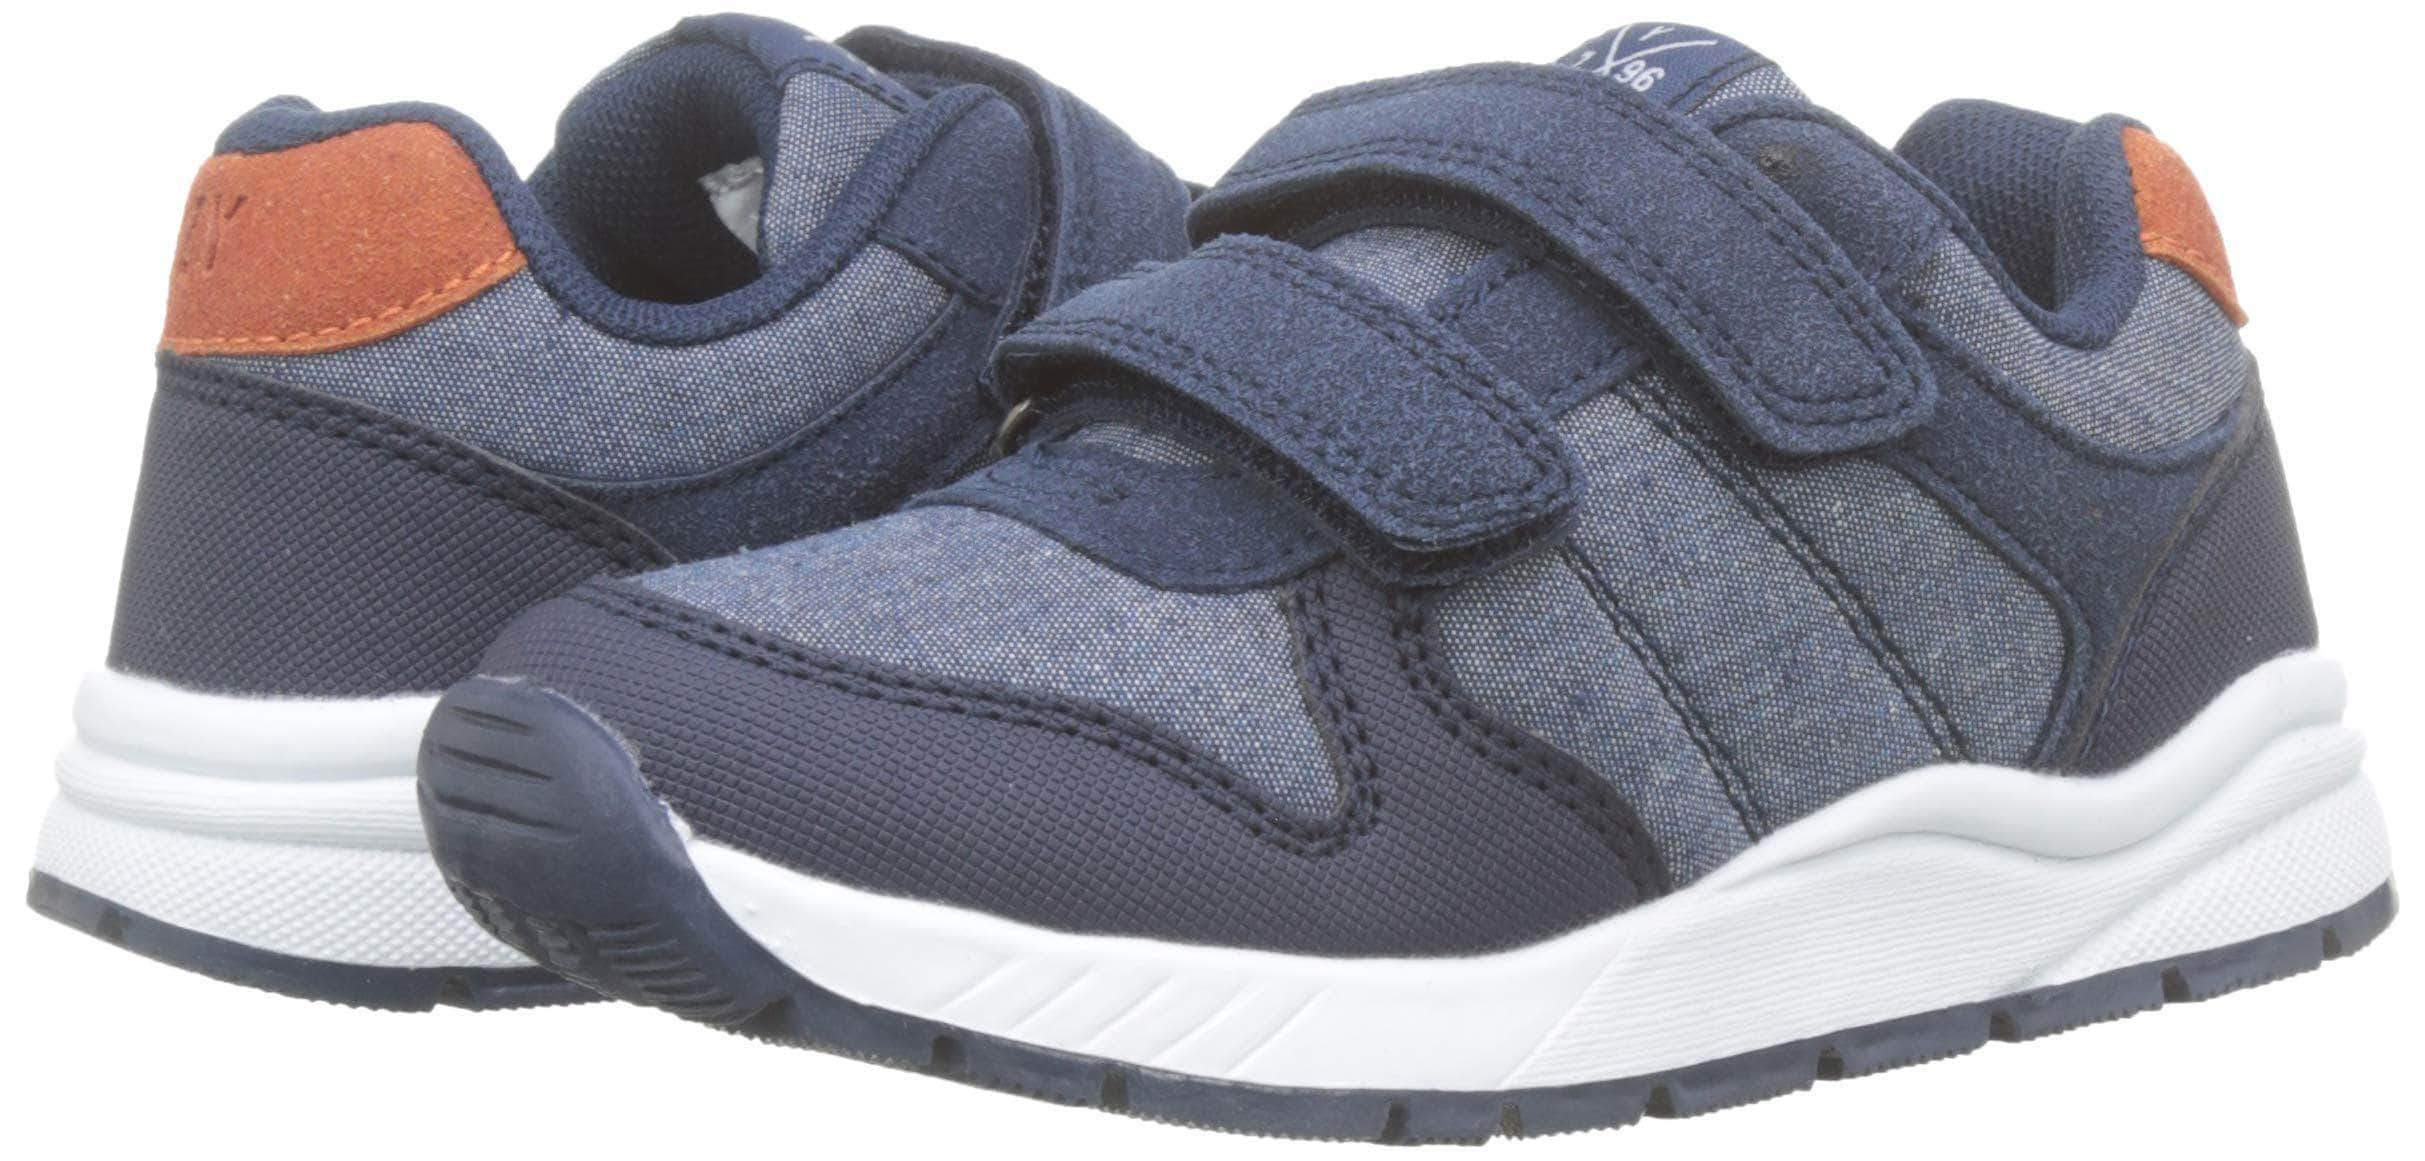 Amazon Zippy Zapatilla Deportiva Zy3, Niños, Azul (Dress Blue 19-4024 TC 185), 29 EU